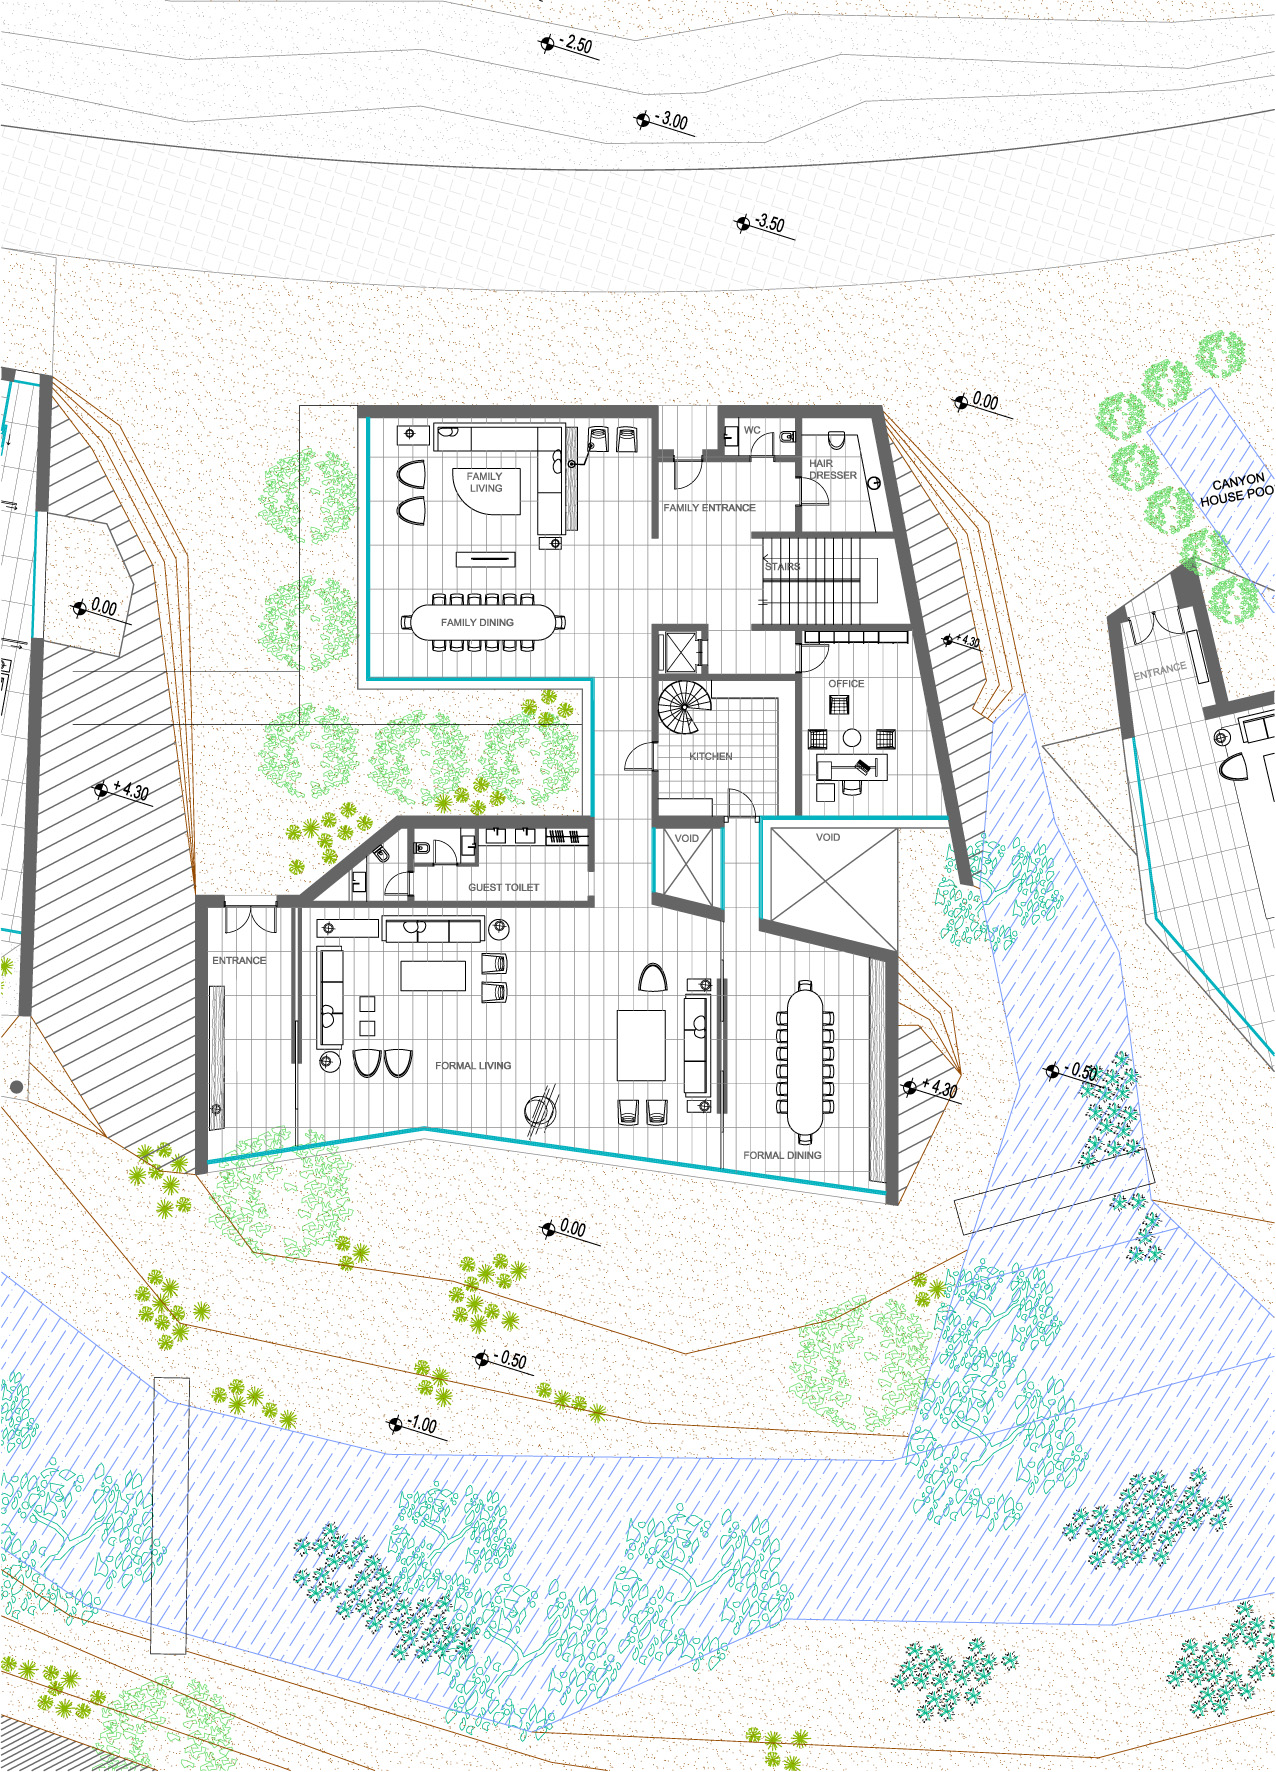 V:\44 KHOBAR competition\Drawings\X-ref\Villa 3 Fawaz - U Shaped